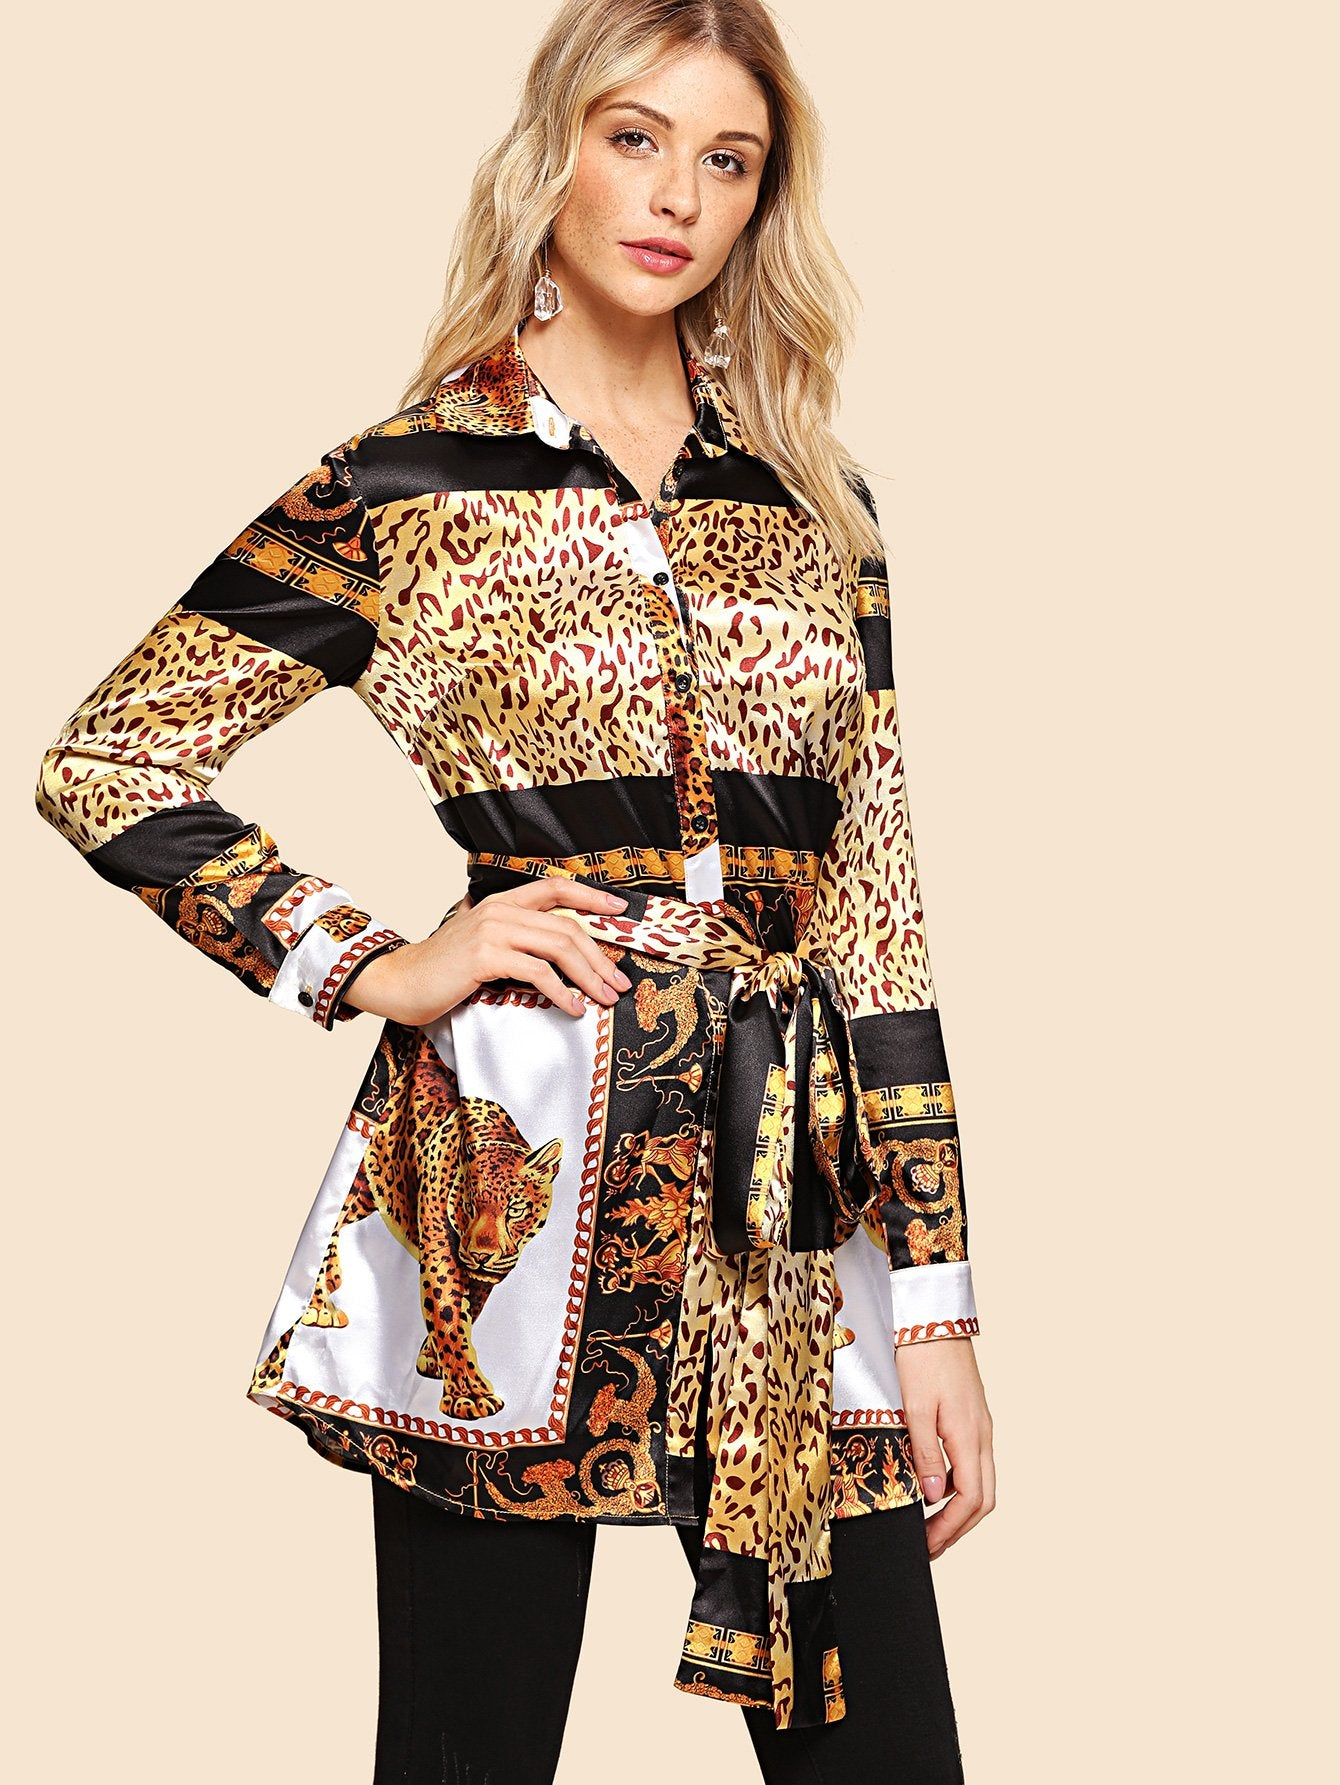 ae72ea5f79e9 Shirts - Women's Multicolor Leopard Print Self Belted Shirt at ...